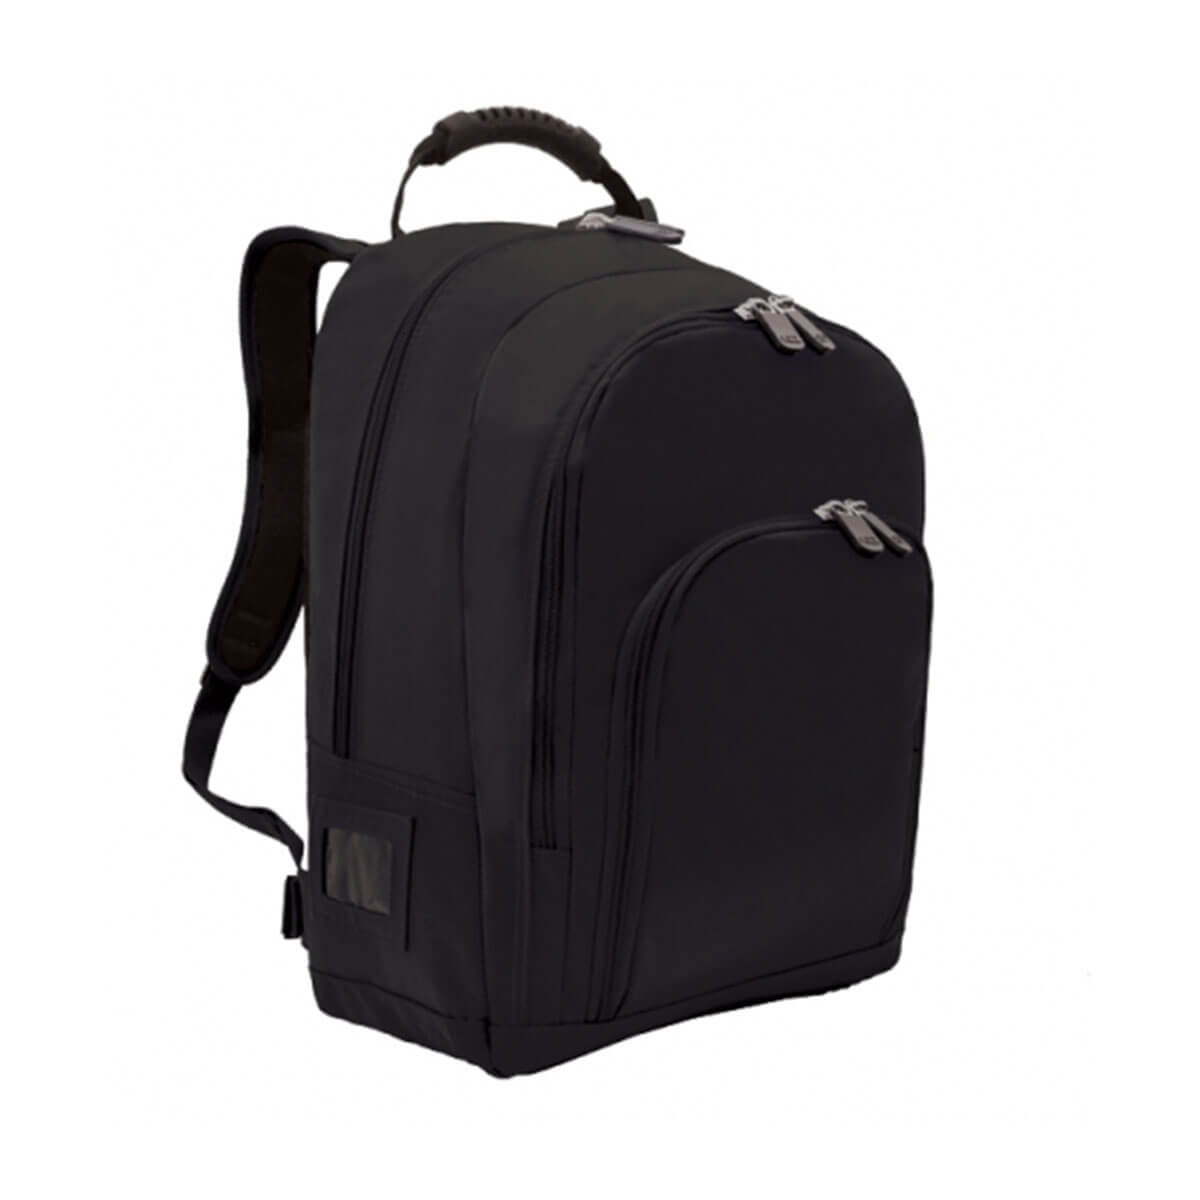 Castell Backpack-Black